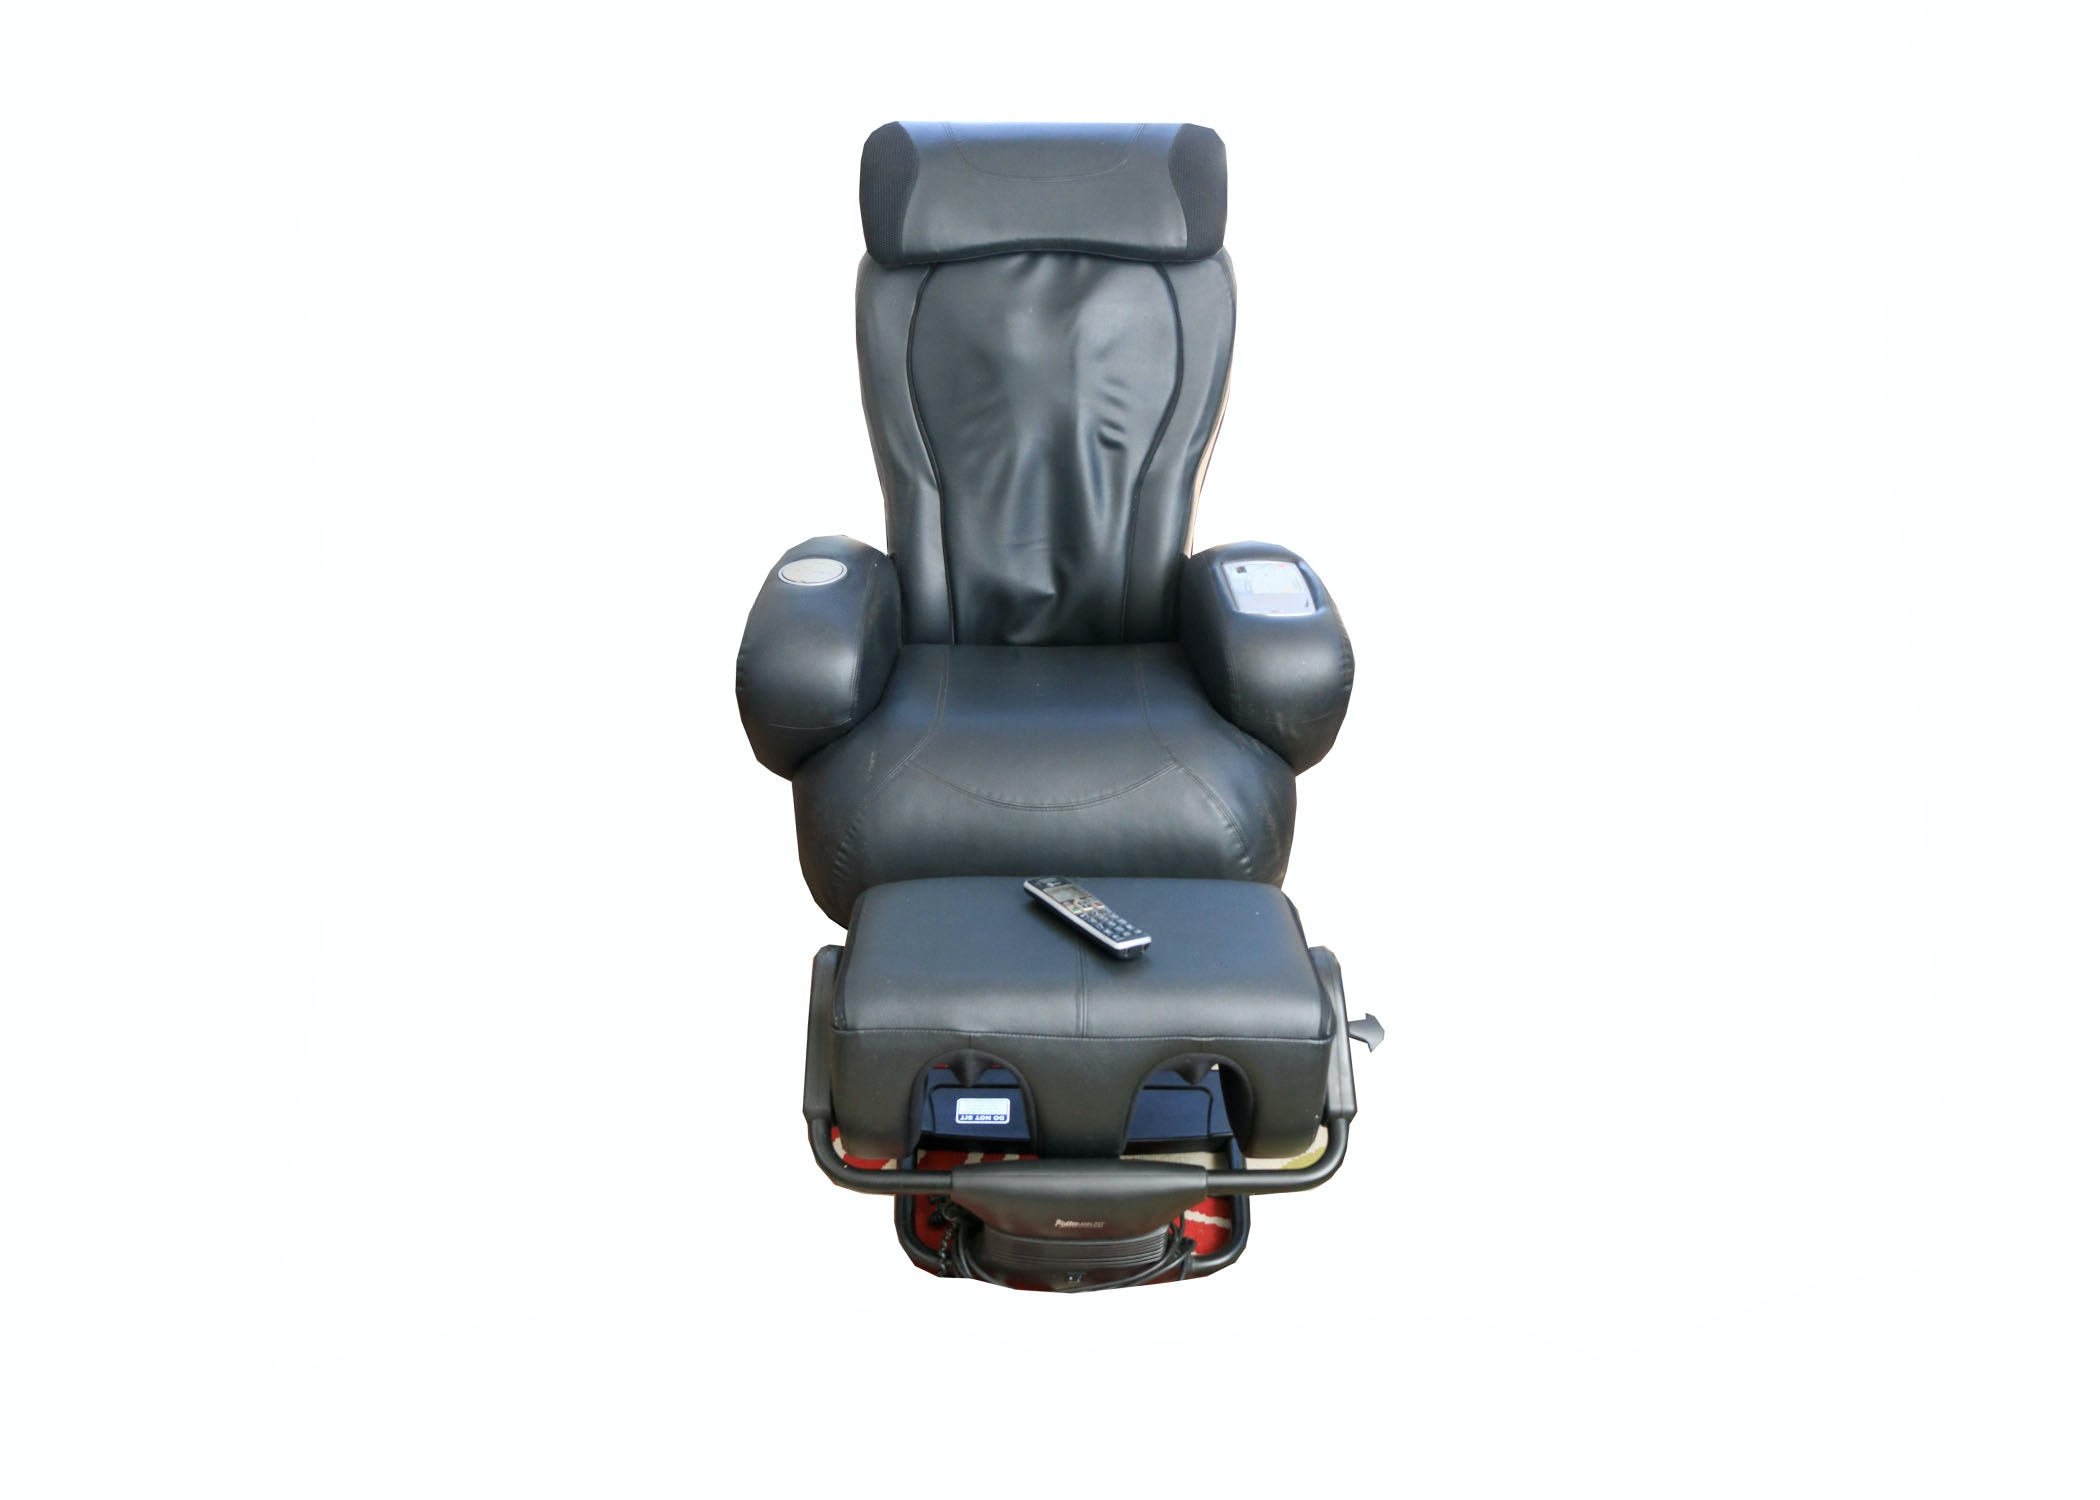 ijoy turbo 2 massage chair with ottoman